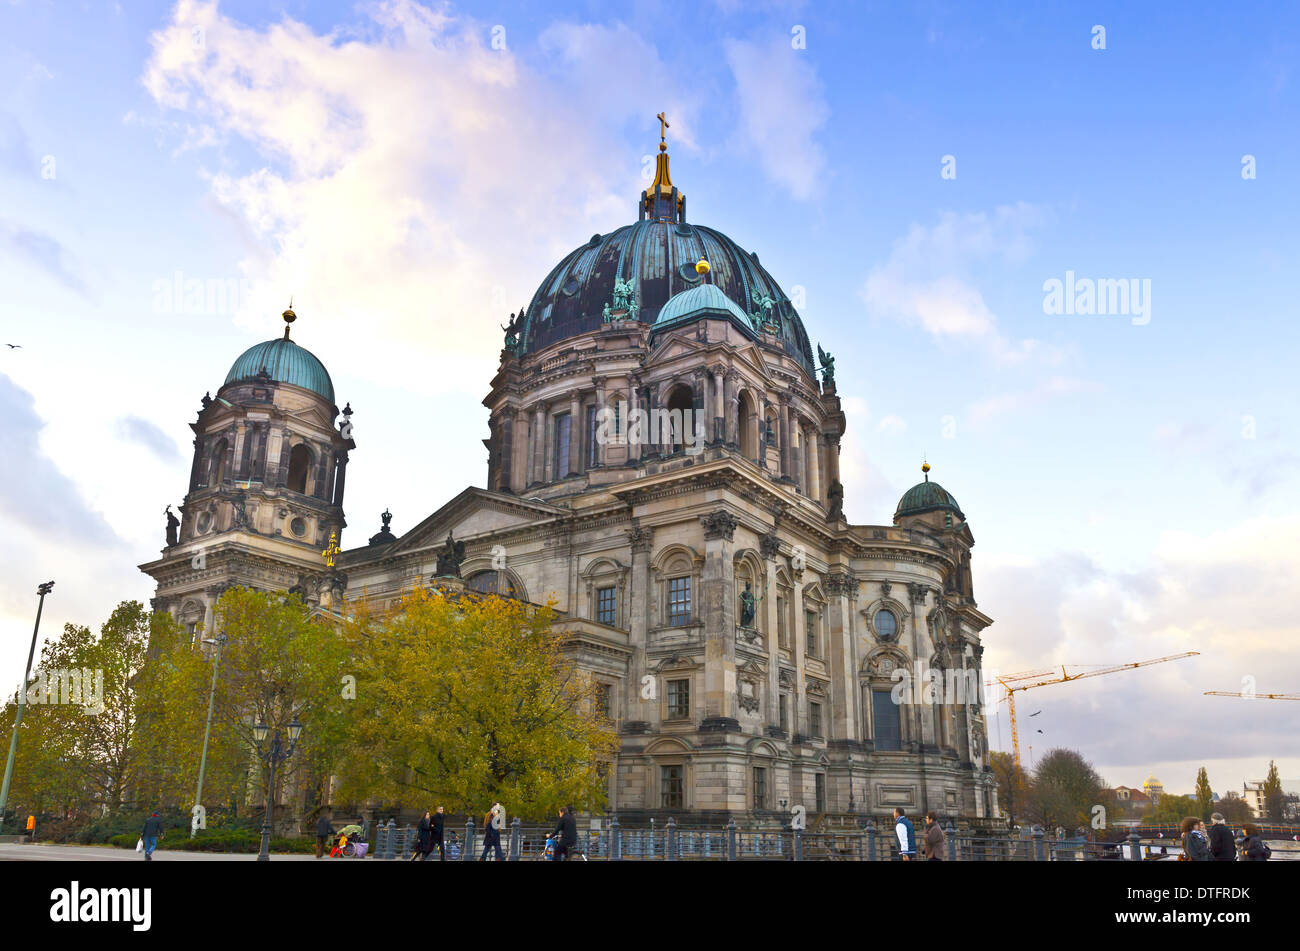 Description: Famous building of Berlin Cathedral (Berliner Dom), Berlin, Germany. - Stock Image